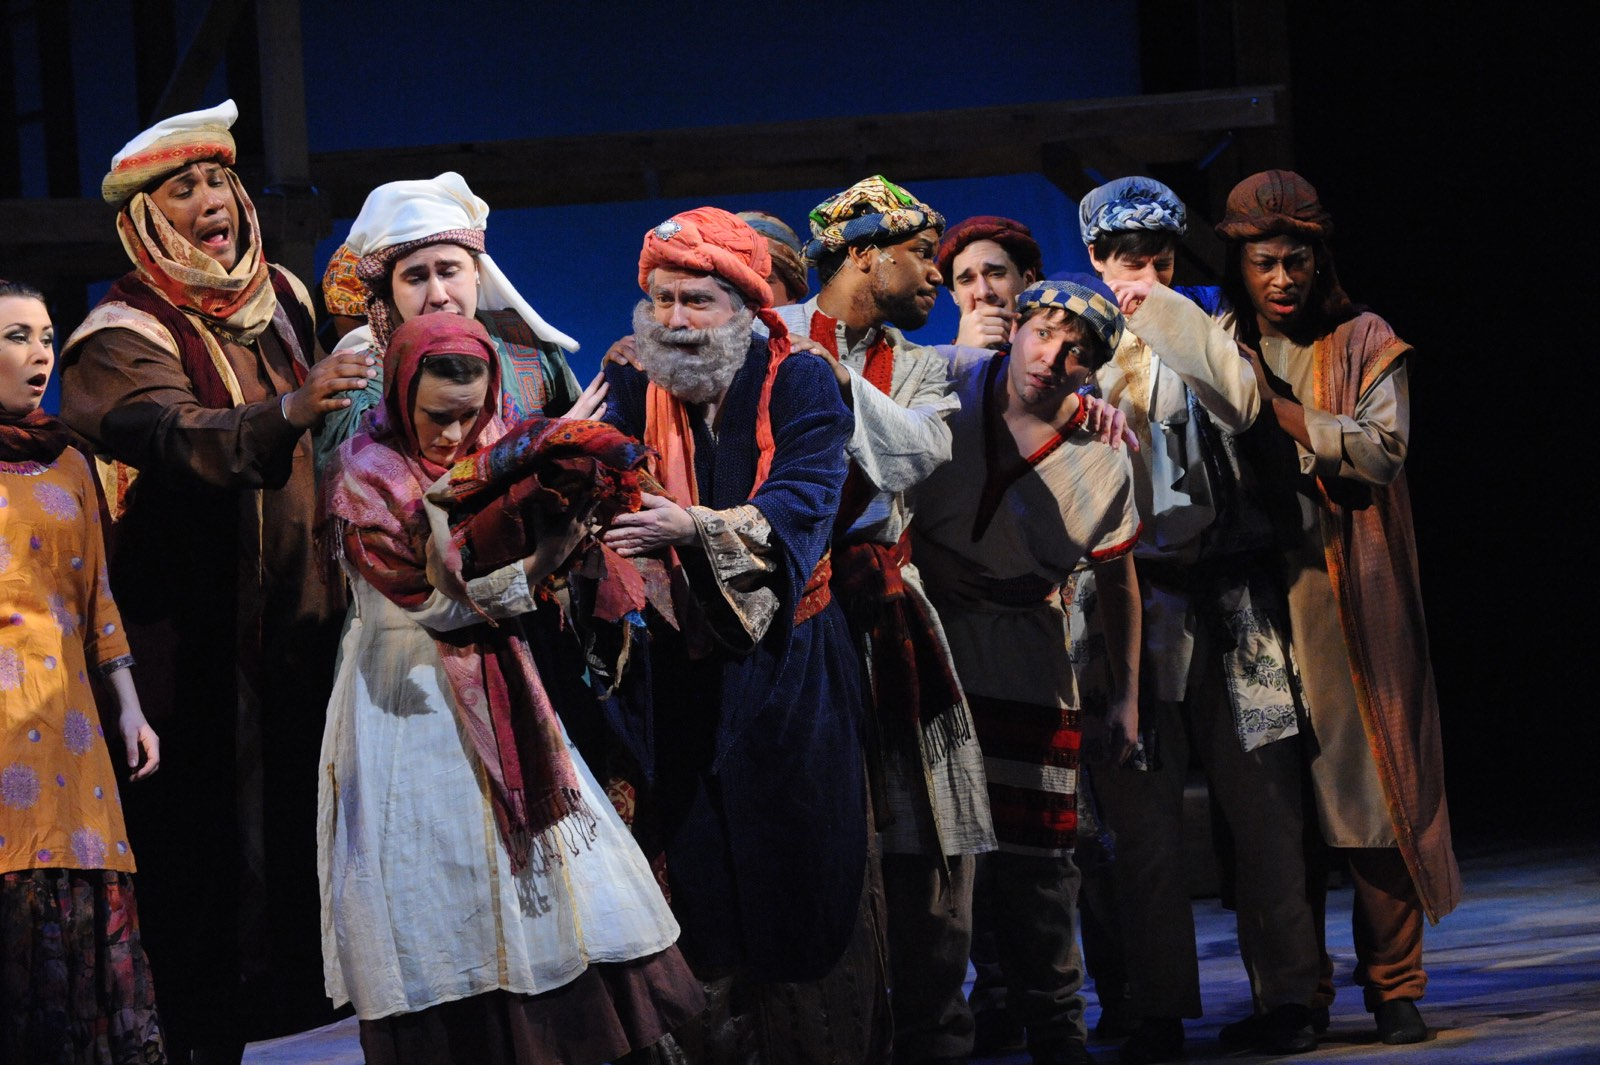 JOSEPH AND THE AMAZING TECHNICOLOR DREAMCOAT - MaryLee Adams, Stephawn Stephens, Nick Lehan, Erin Driscoll, R. Scott Williams as Jacob, Mardee Bennett, Ben Lurye, Andrew Sonntag, Parker Drown, L.C. Harden, Jr.<br>Set design by Eugenia Furneaux, Lighting by Dan Covey, Costumes by Ivania Stack - photo by Stan Barouh